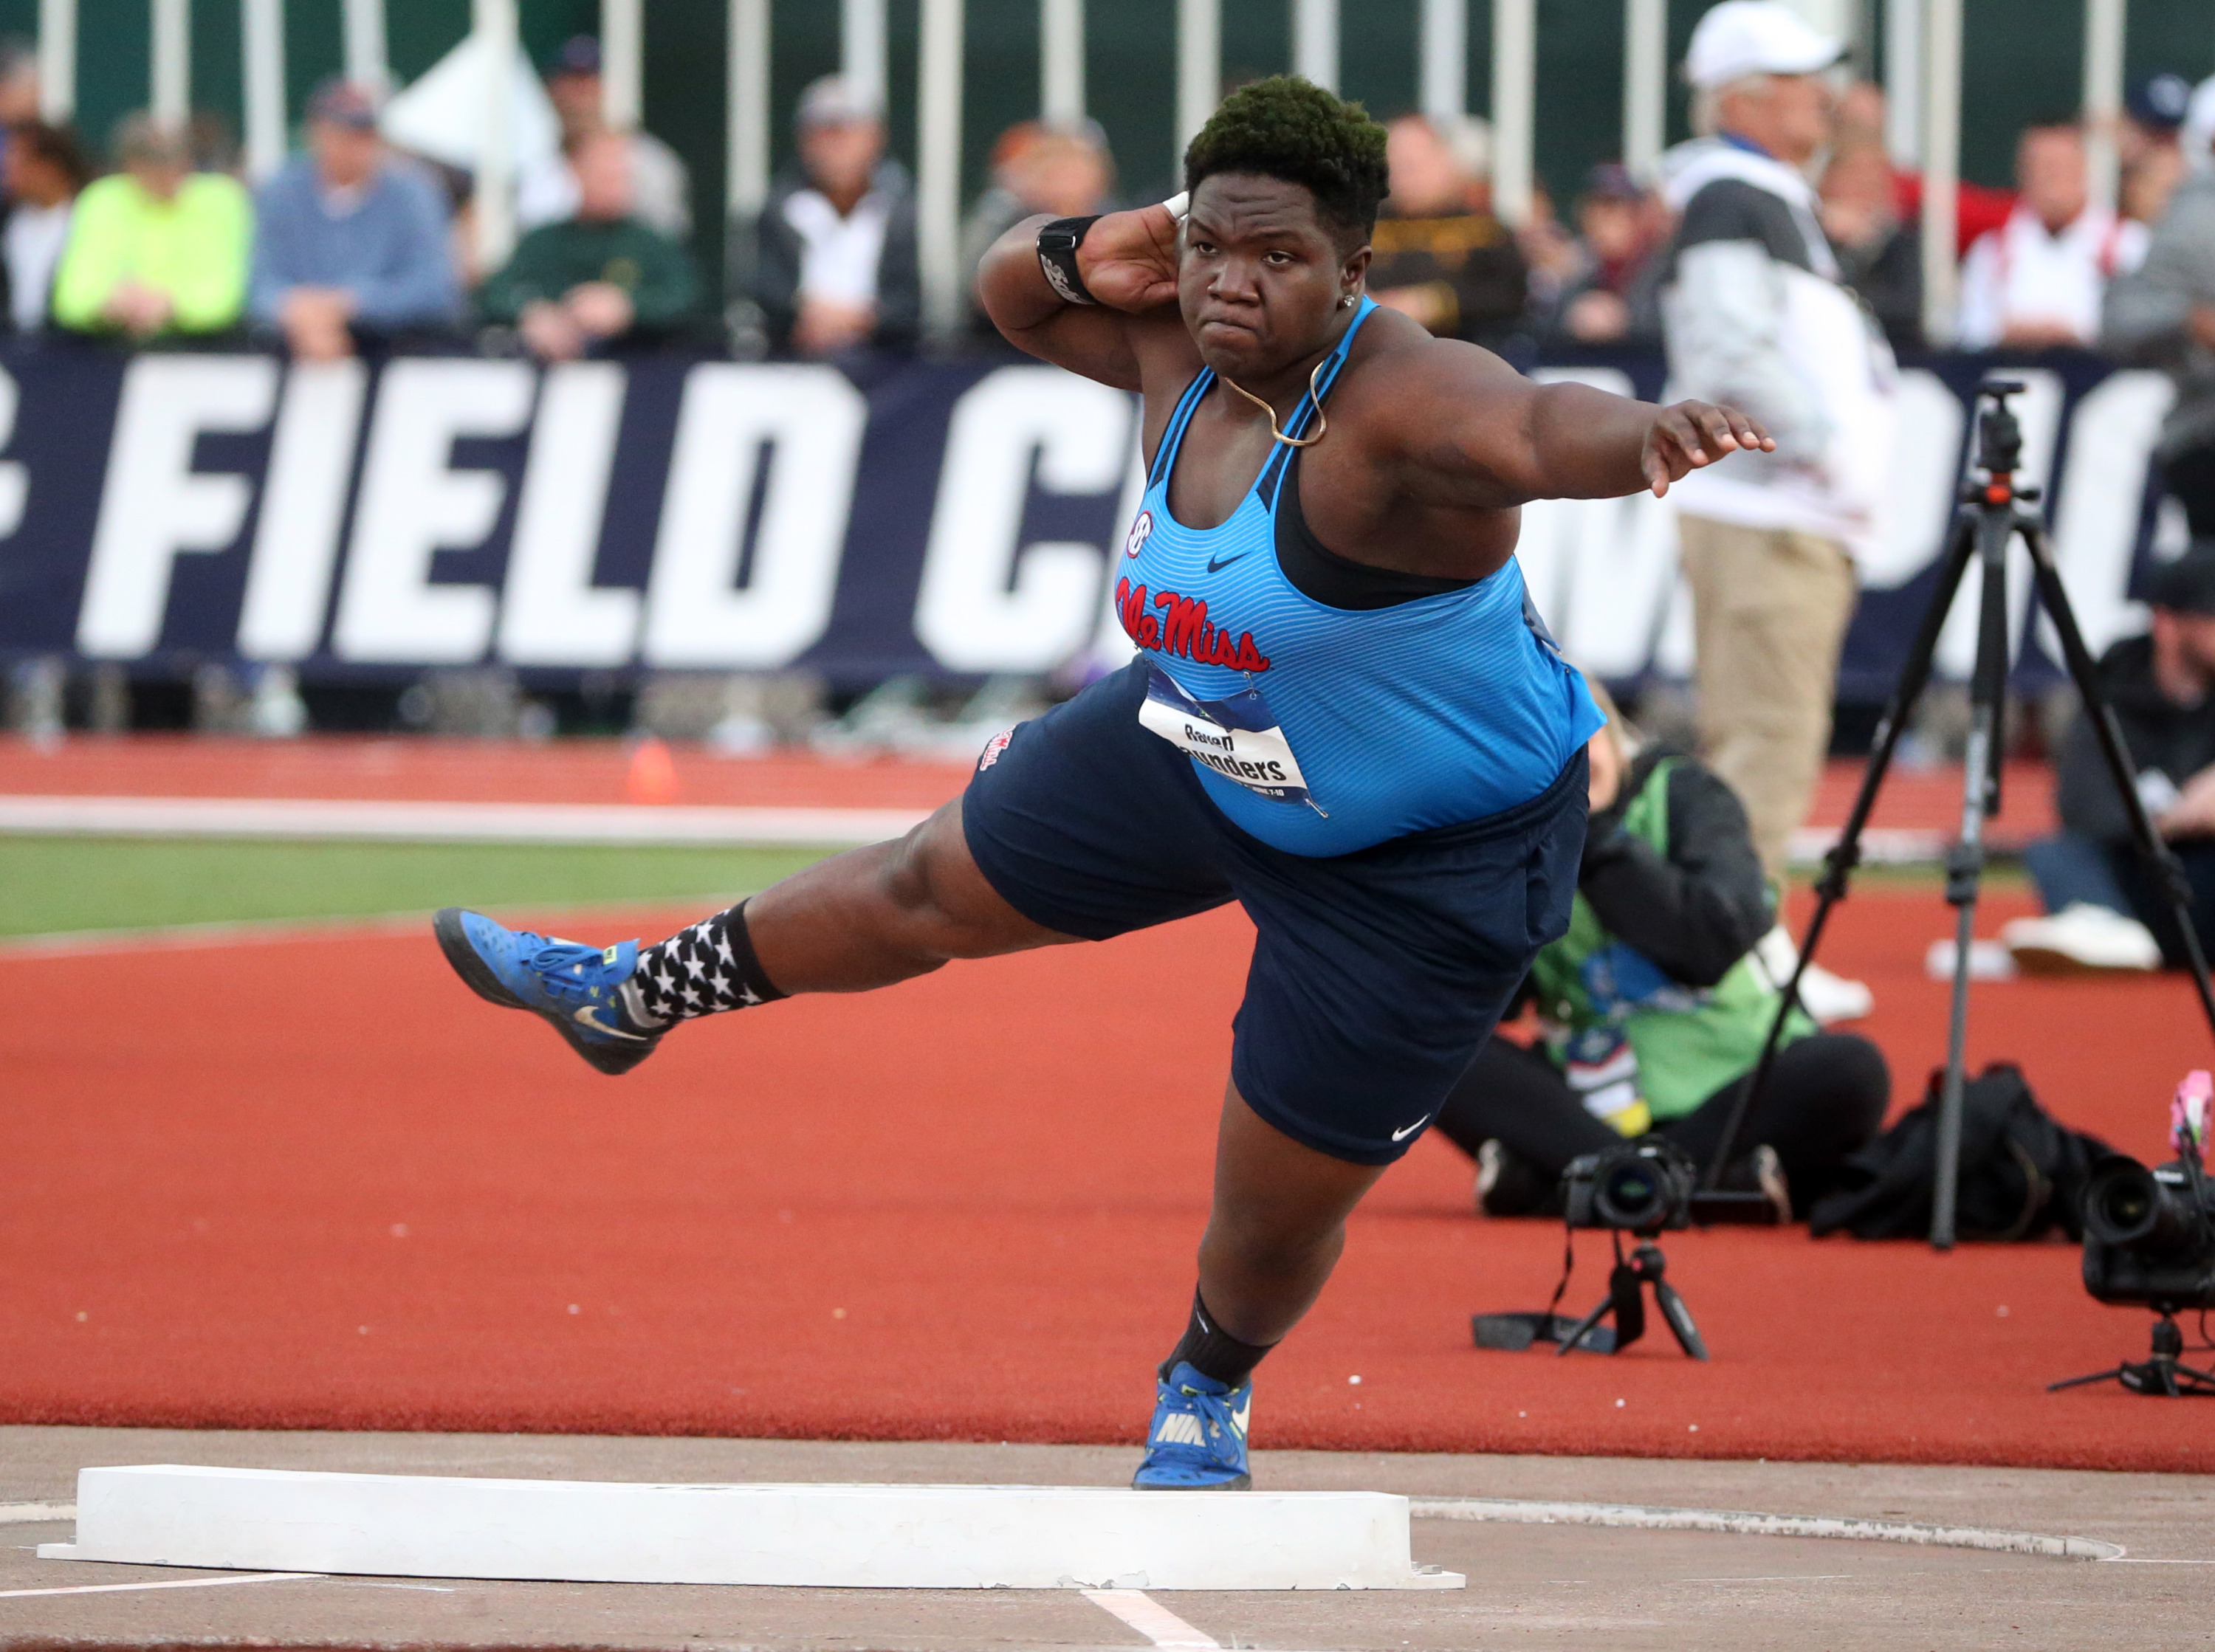 cd20ccdd503e Pair of Medals Highlight Final Day of USATF Outdoor Championships ...